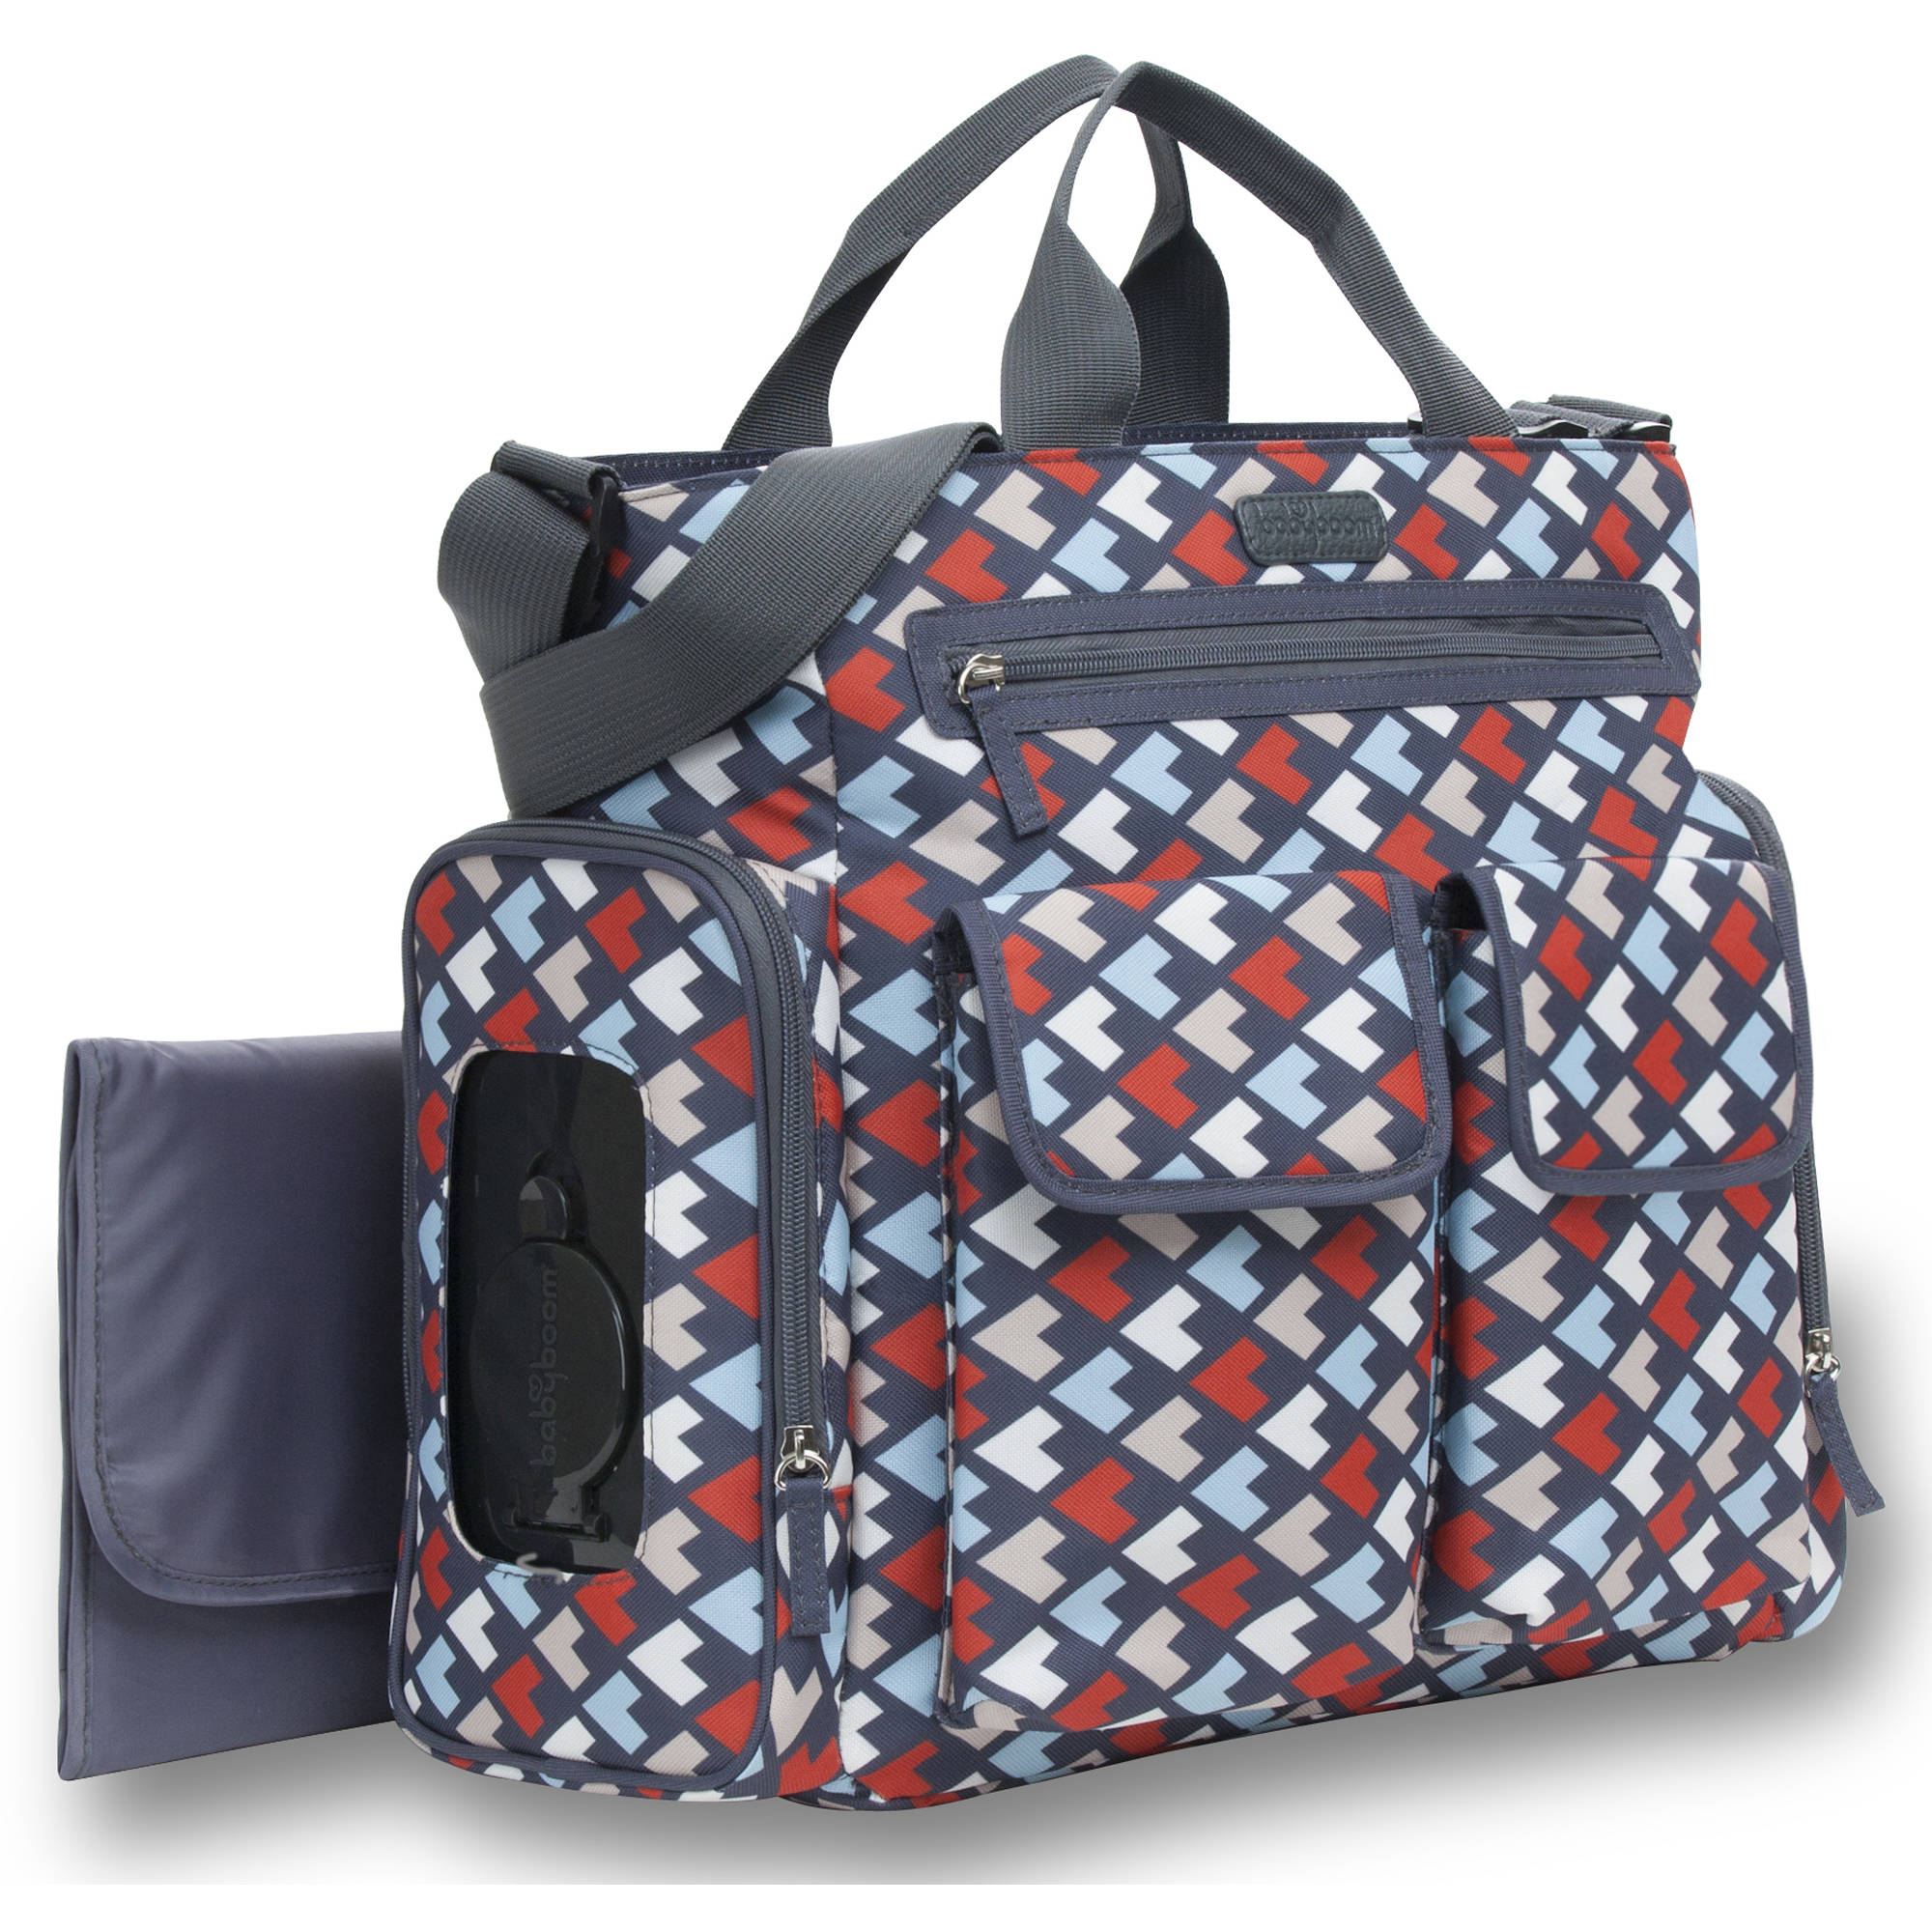 Baby Boom Multi Geo Tote Diaper Bag by Baby Boom